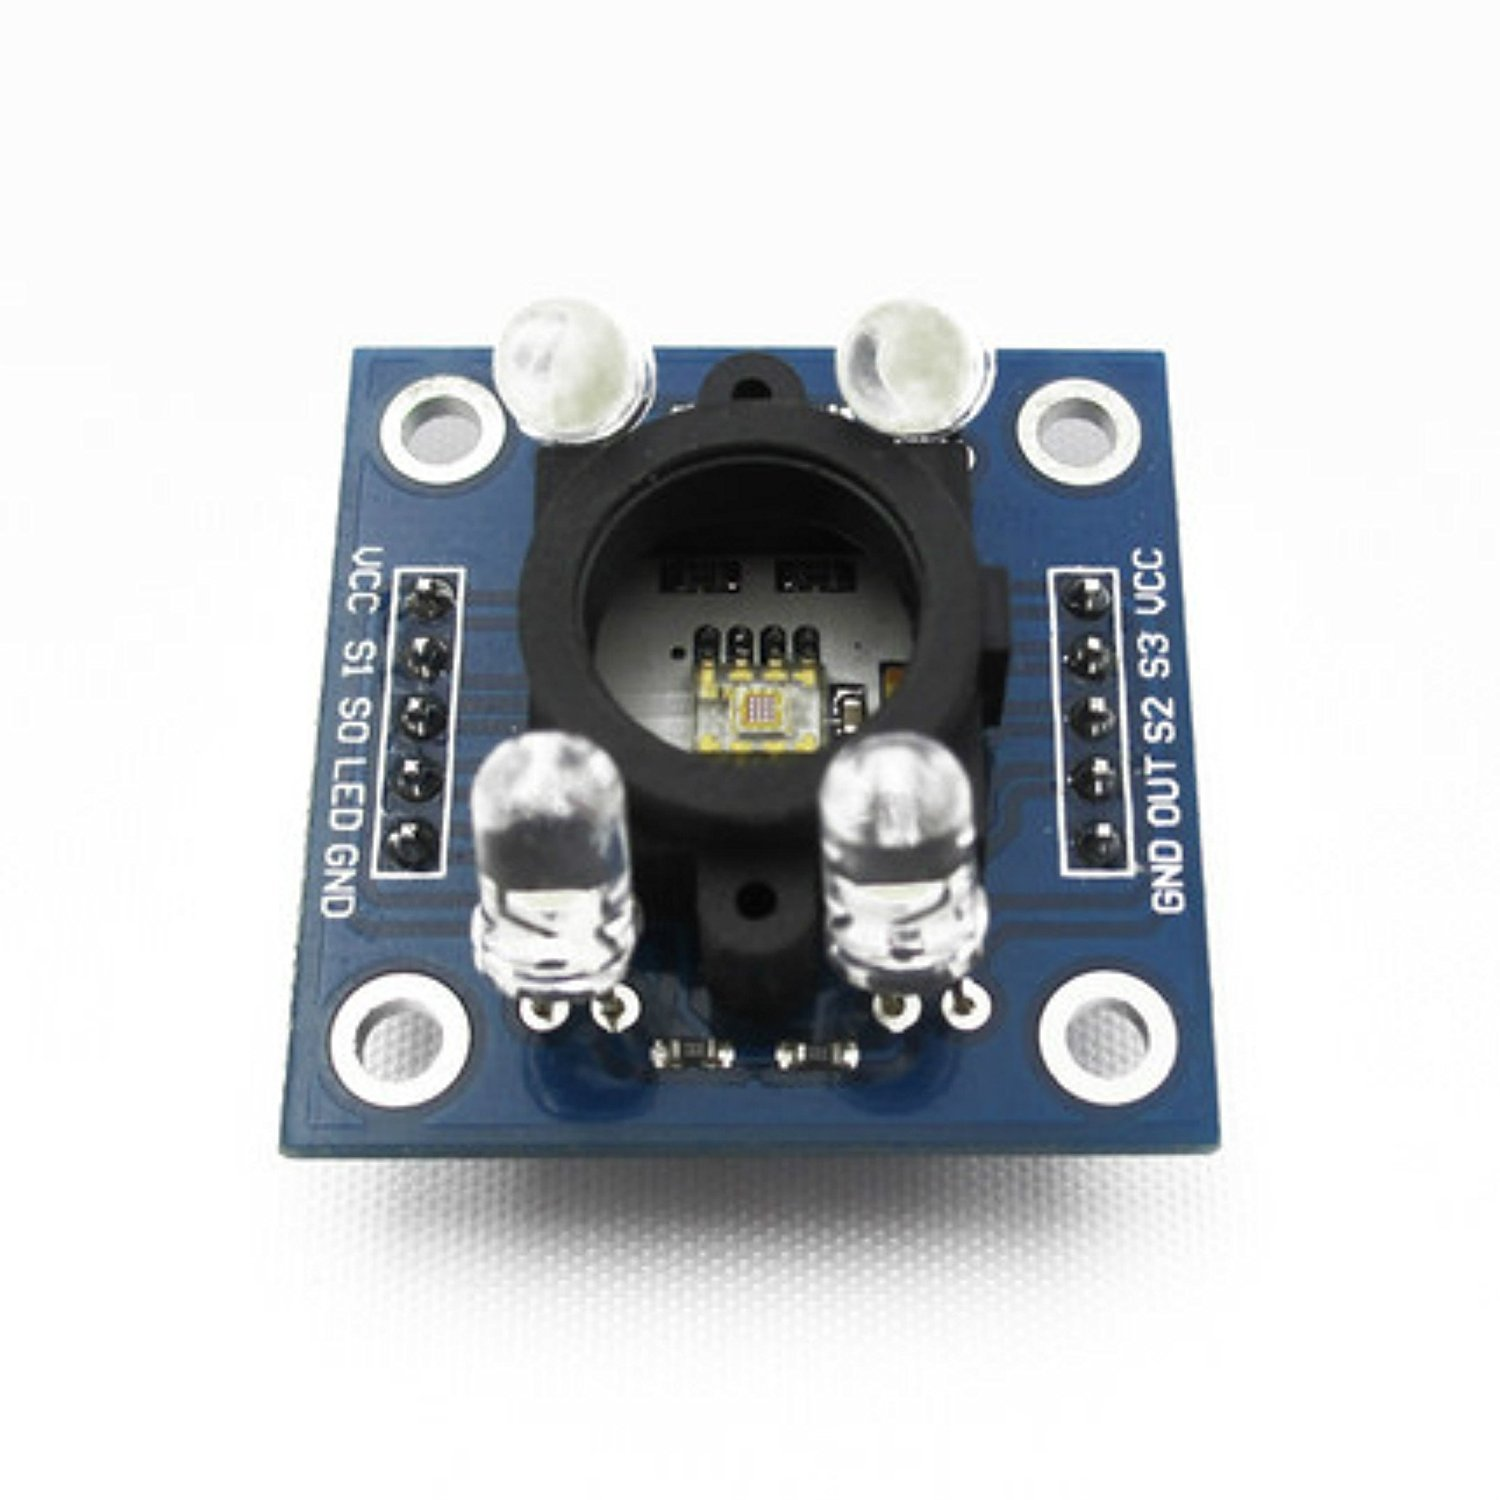 Wingoneer Tcs230 Tcs3200 Detector Module Gy 31 Color The Sensor We Will Use In This Circuit Is A Recognition For Arduino Industrial Scientific